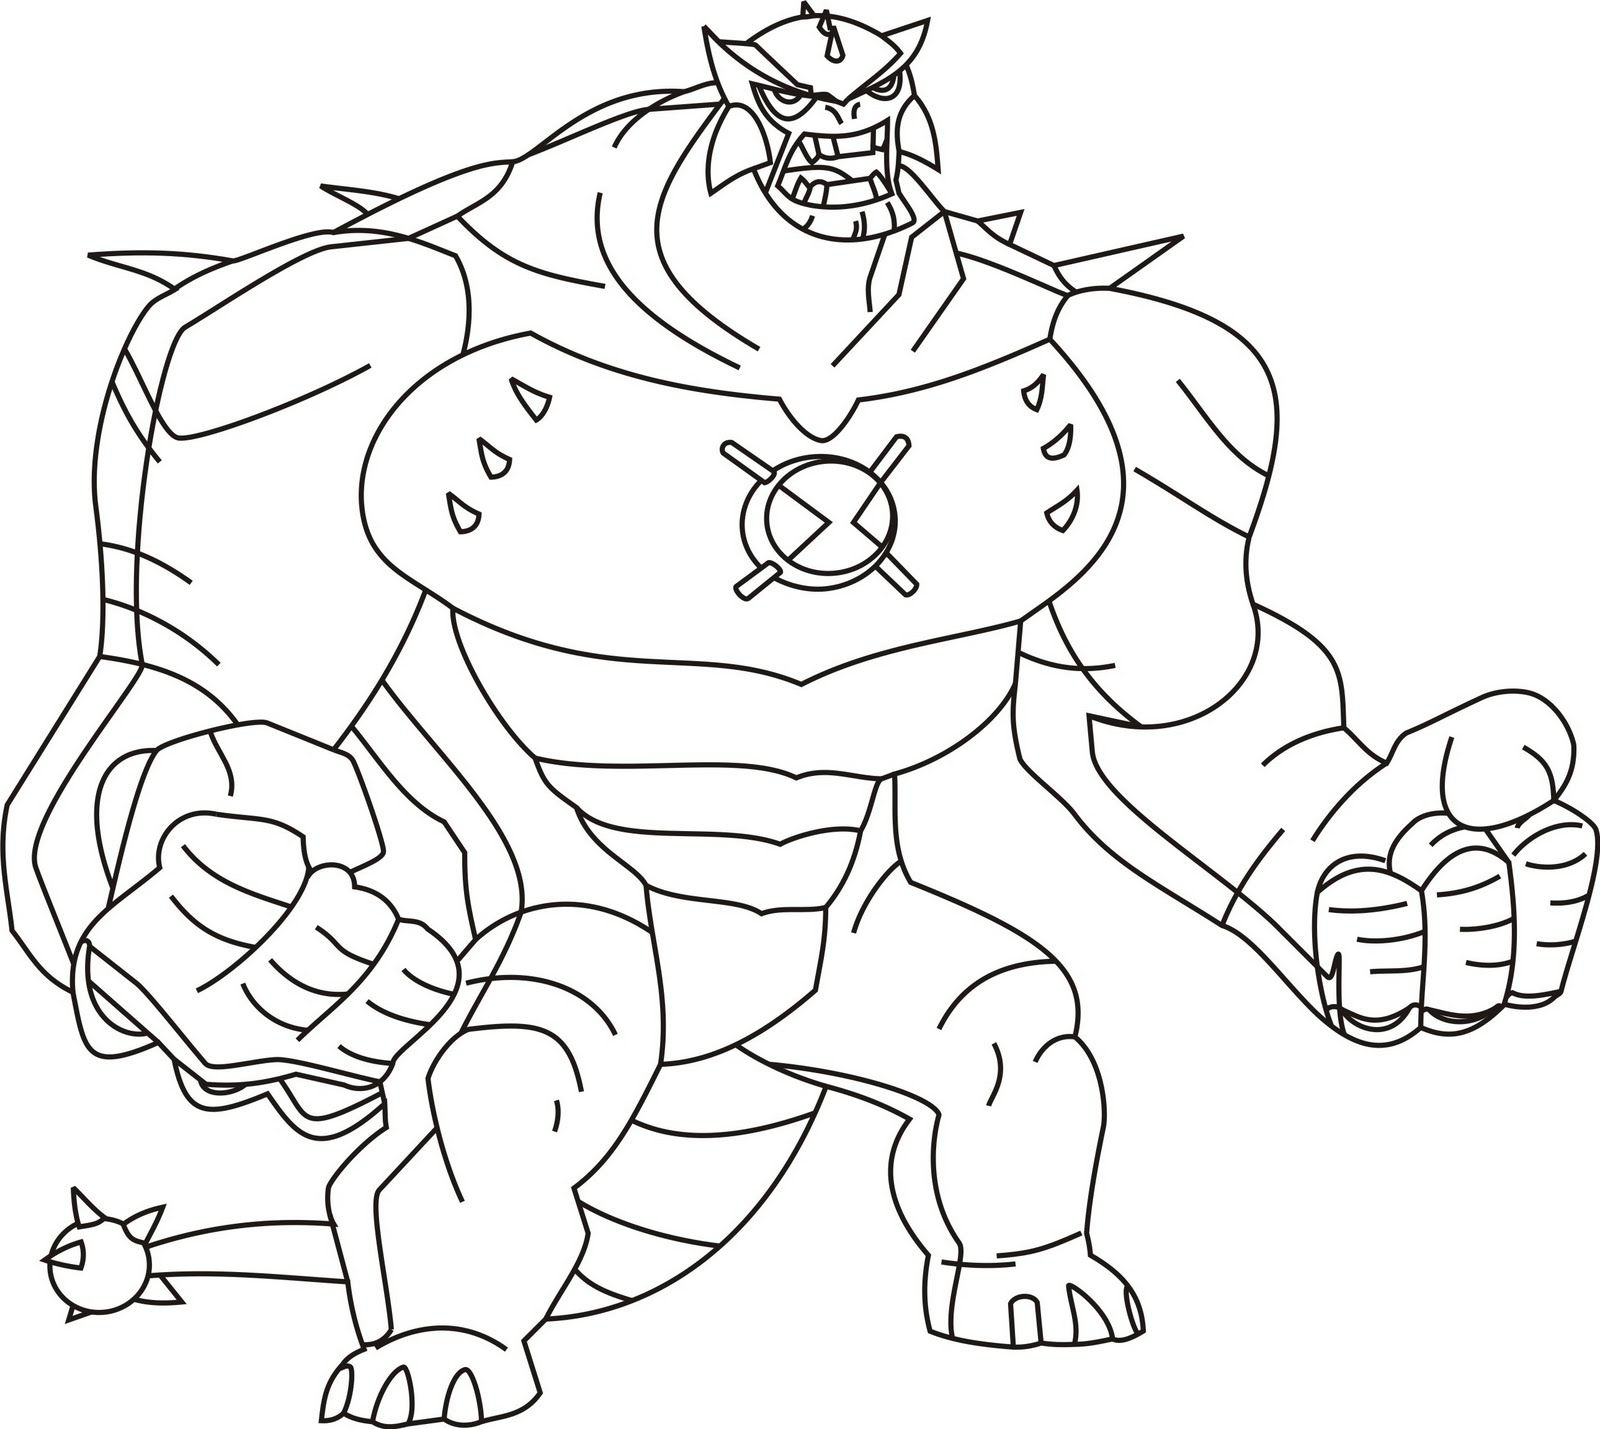 Ben 10 ultimate alien colouring pictures